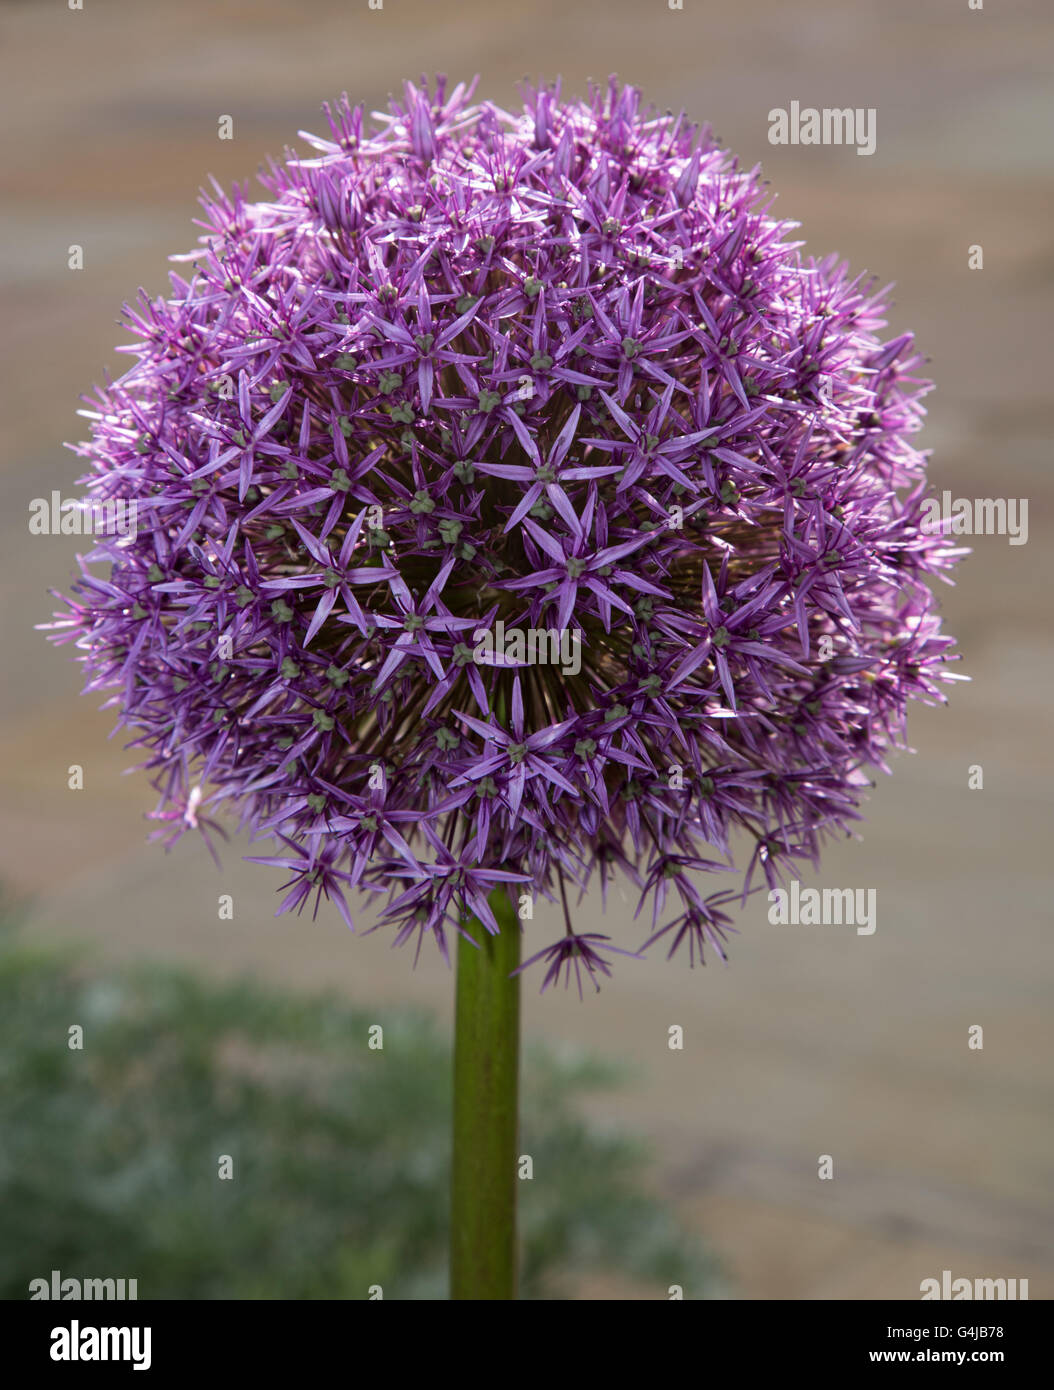 Globemaster allium flowers in full bloom, just before turning to seed - Stock Image